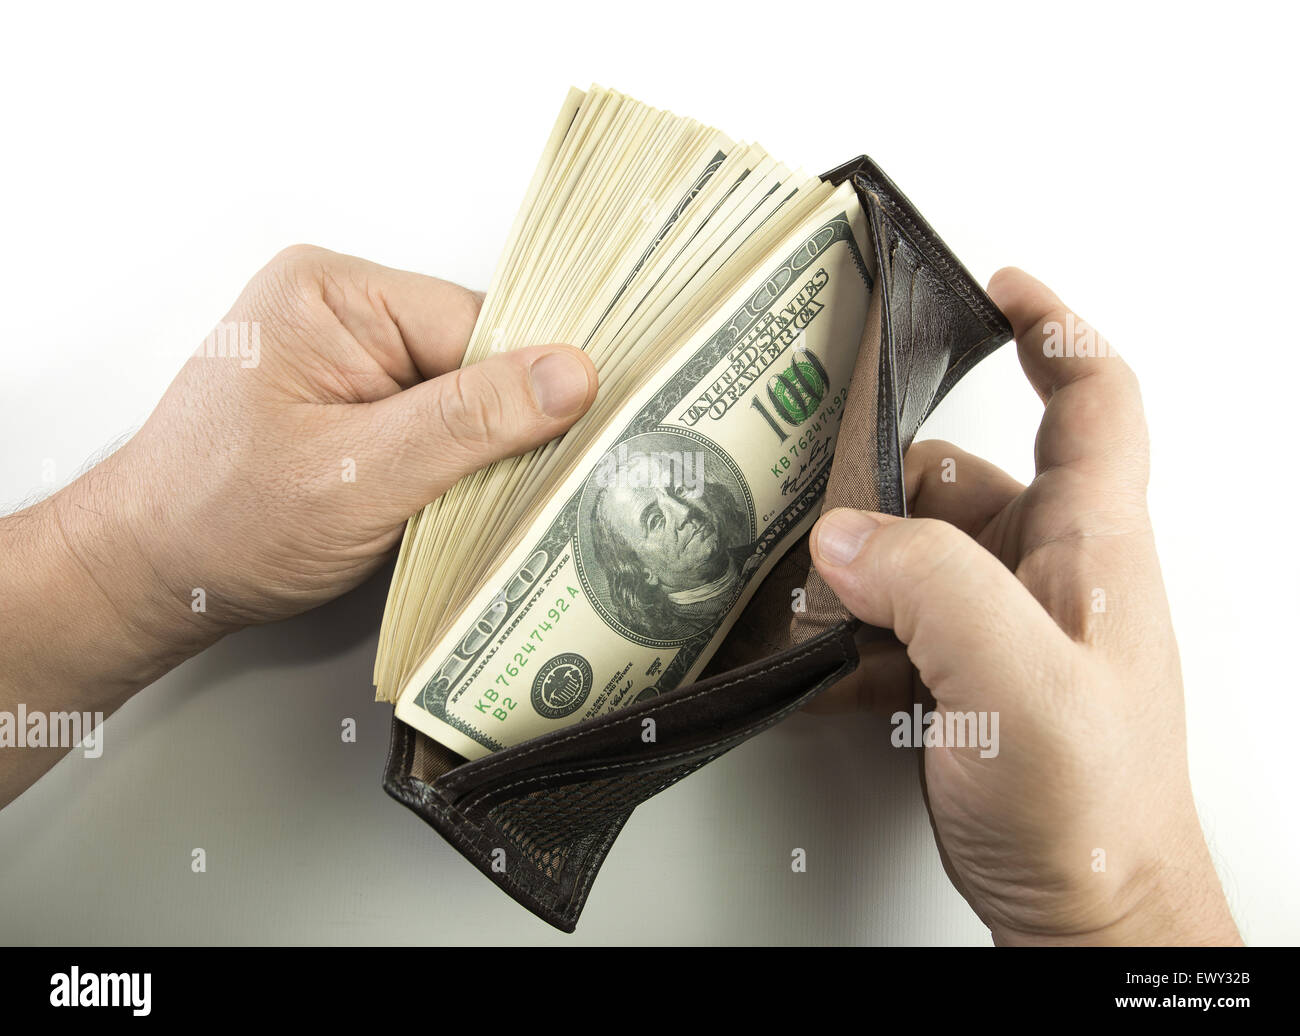 opening the wallet full of money stock photo 84802995 alamy